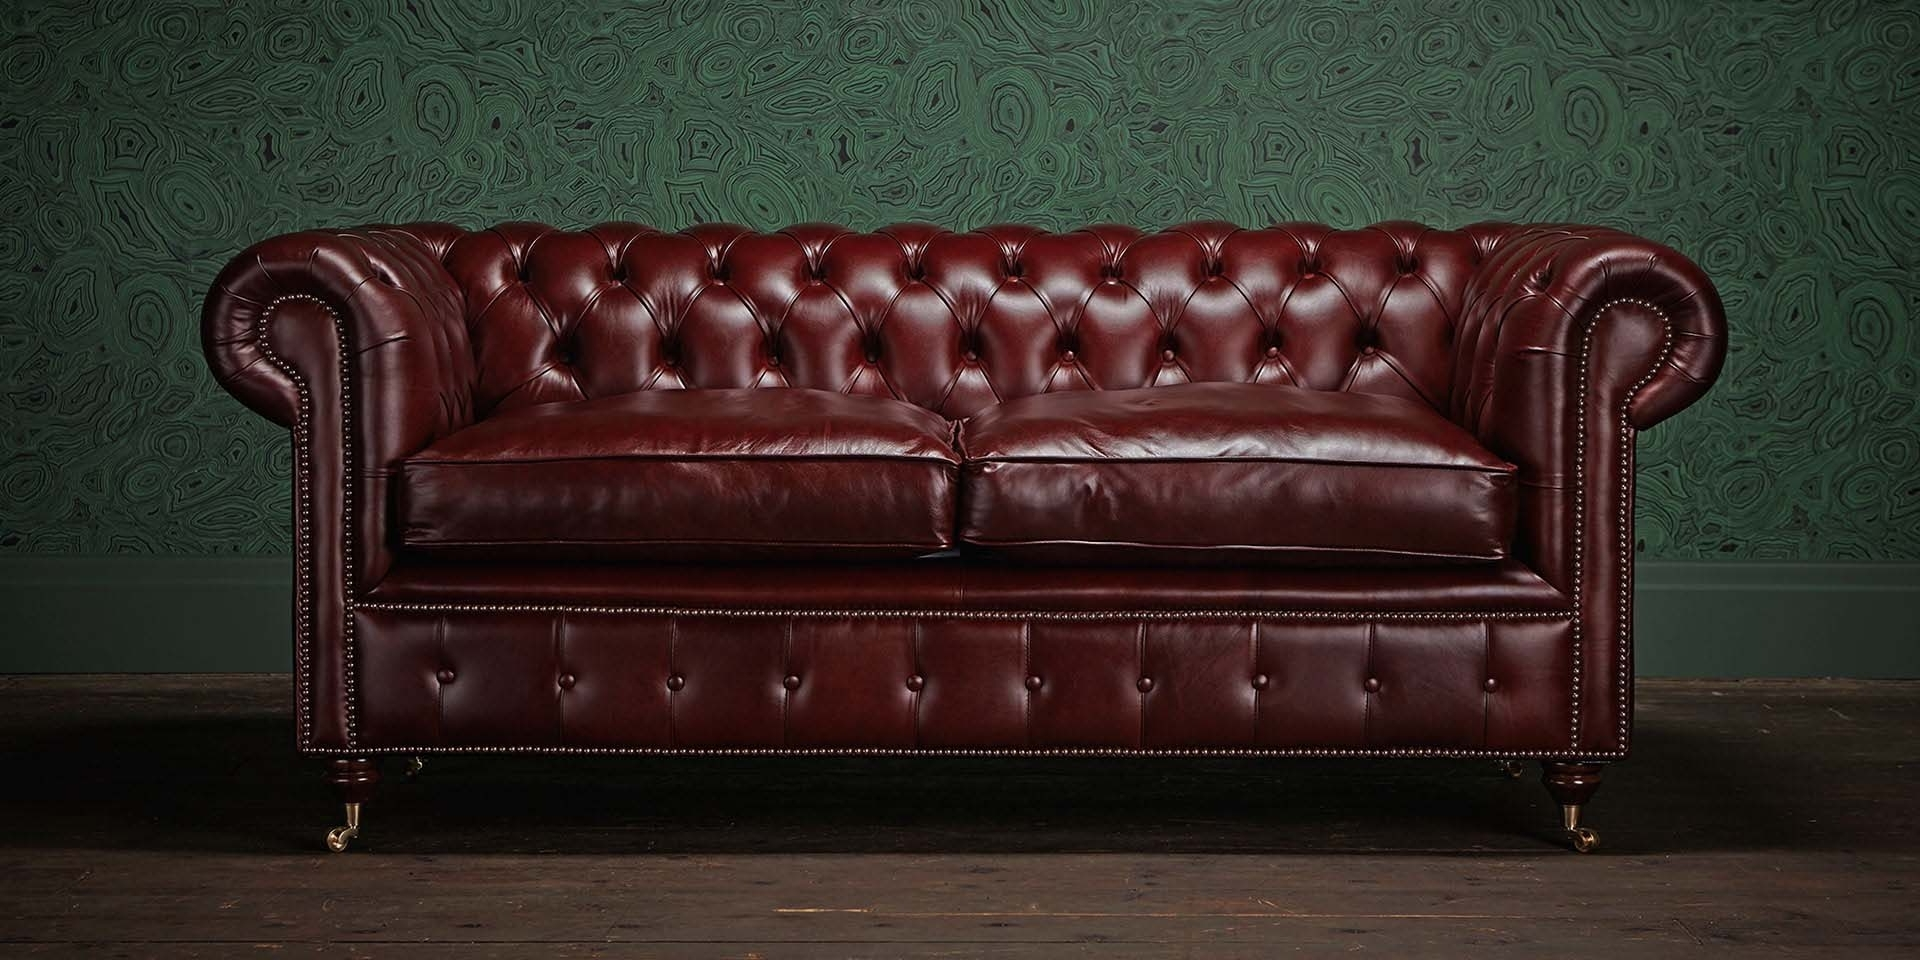 2018 Leather Chesterfield Sofas Within Original Chesterfield Sofa – Home And Textiles (View 20 of 20)